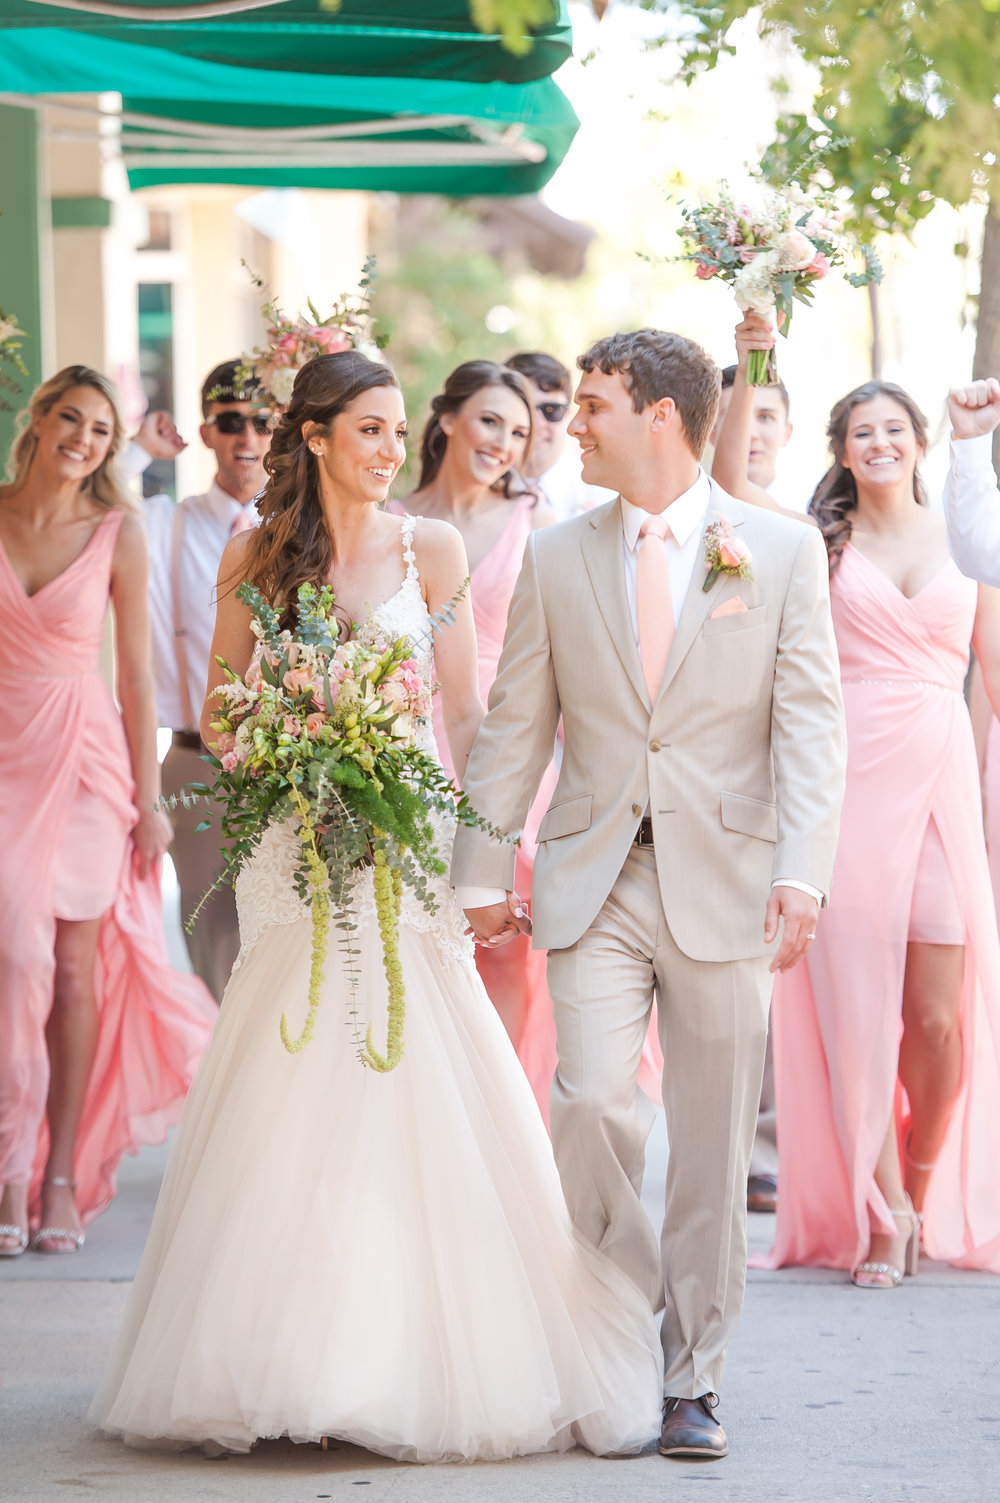 Key West Hyatt Resort Wedding_Jannette De Llanos Photography